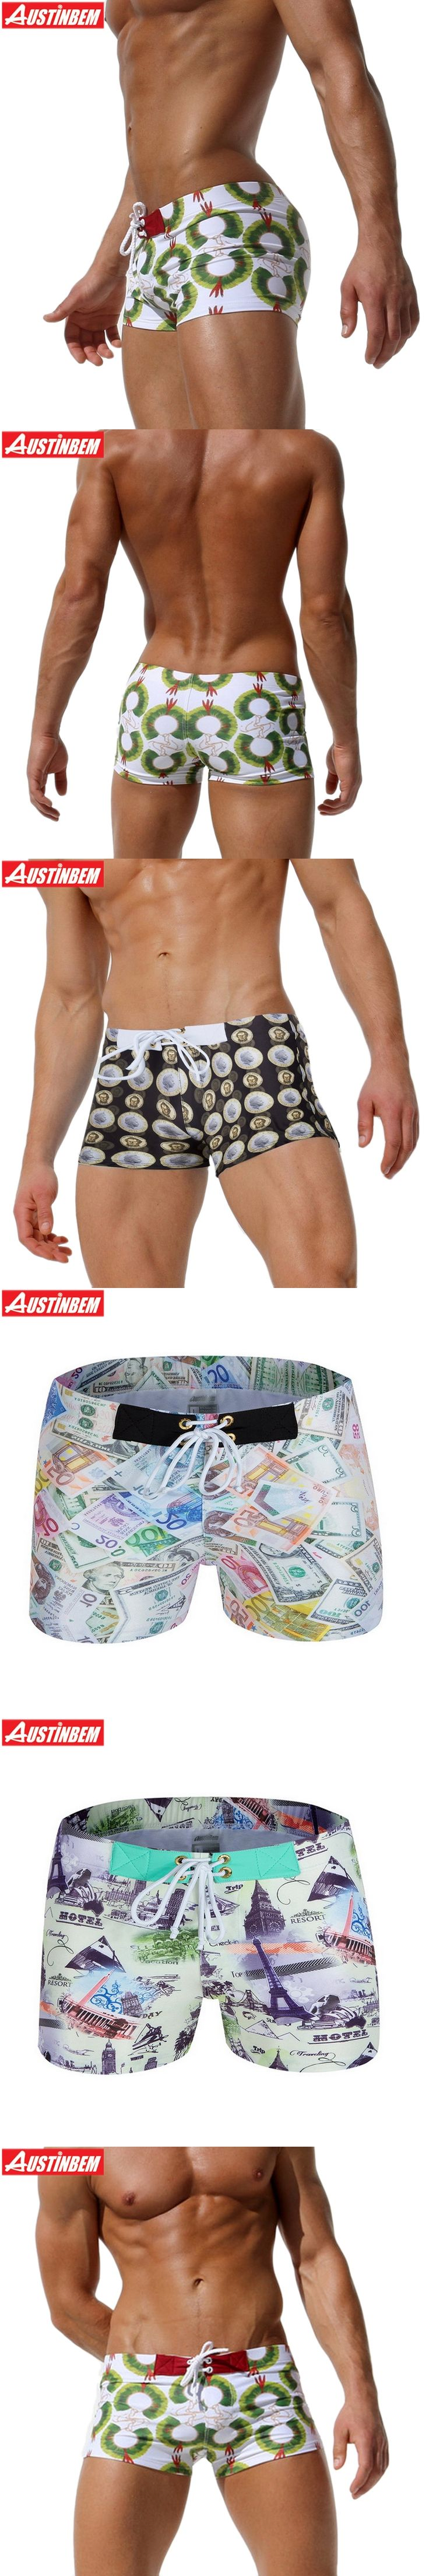 AUSTINBEM 4 style gold coins Men Swimwear Shorts bandage maillot de bain Men'S Swimming Trunks men briefs sport men Swimsuit 293